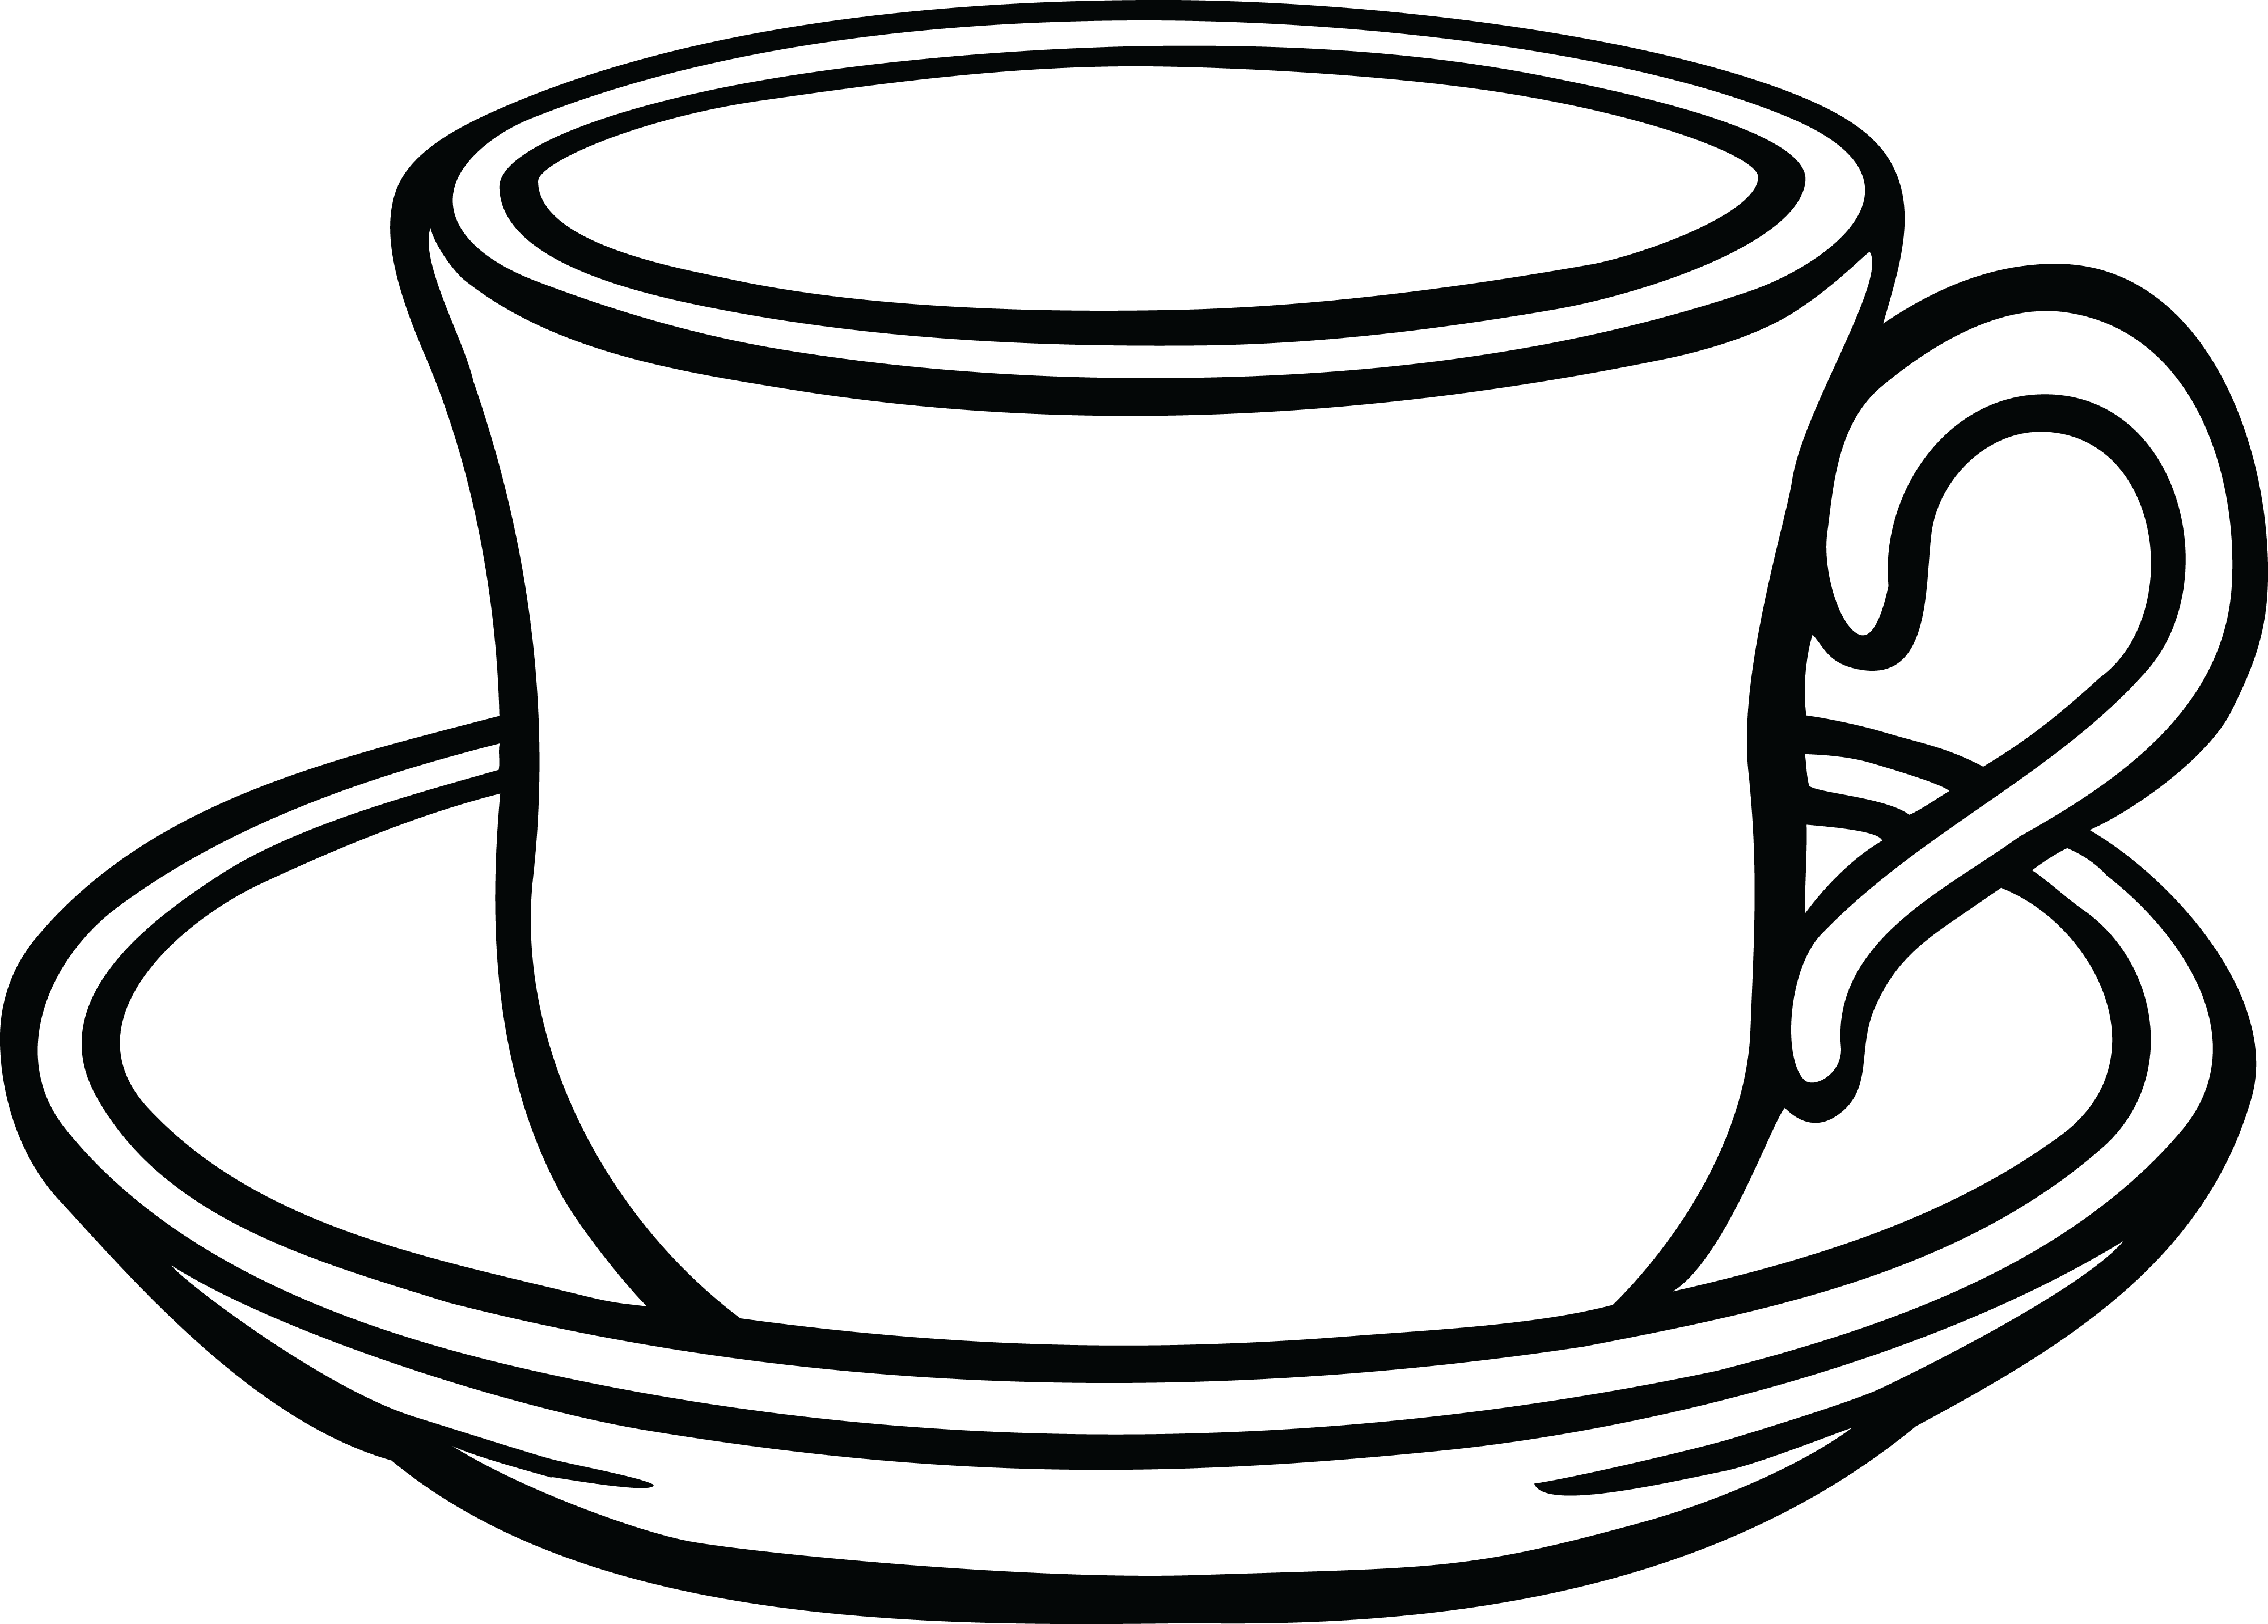 Cups clipart seven. Graphics illustrations free download